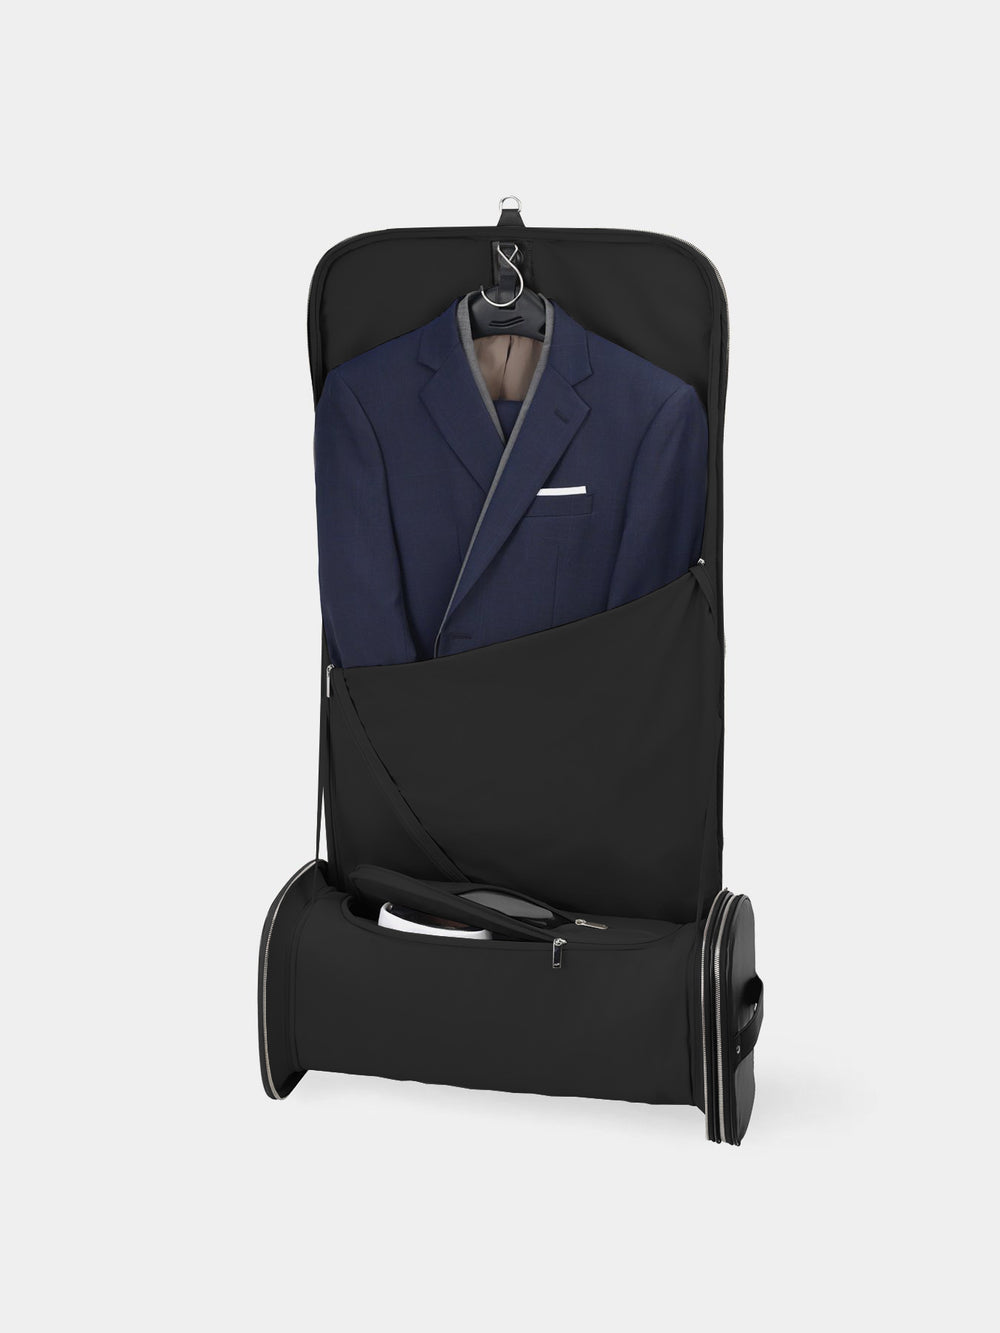 f35 garment bag black leather schwarzes leder